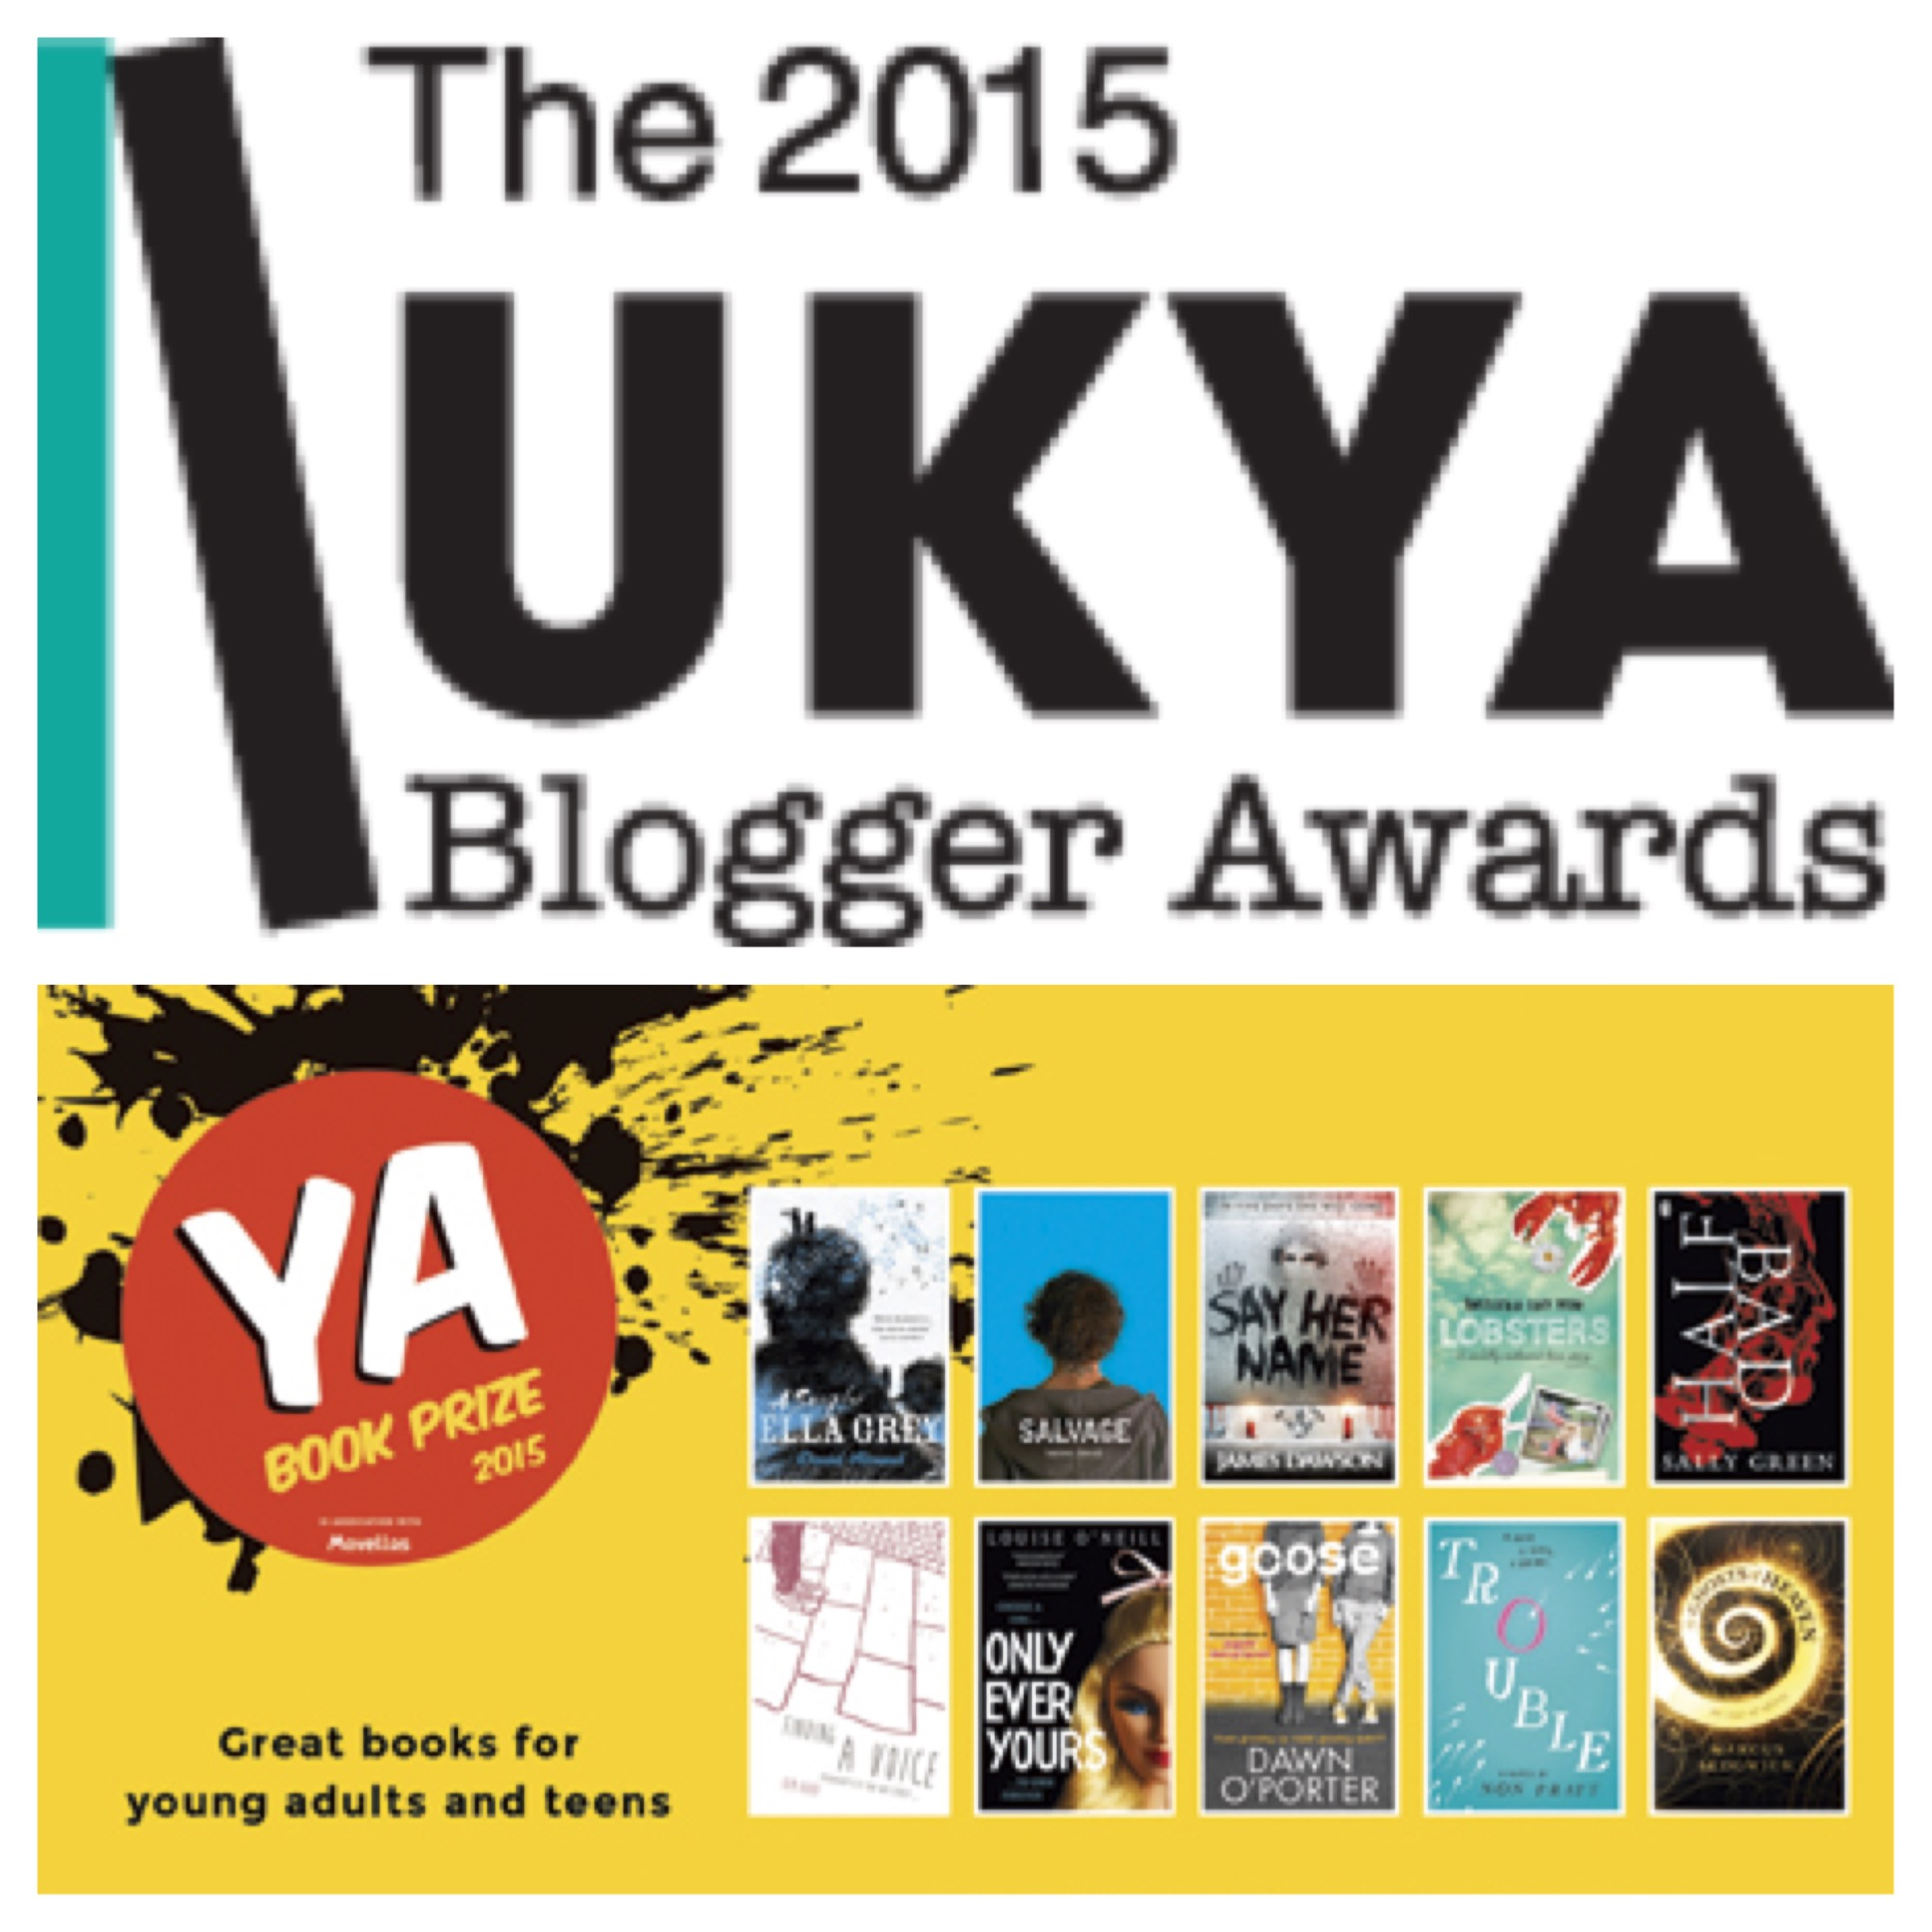 Podcast: UKYA Blogger Awards and the YA Book Prize